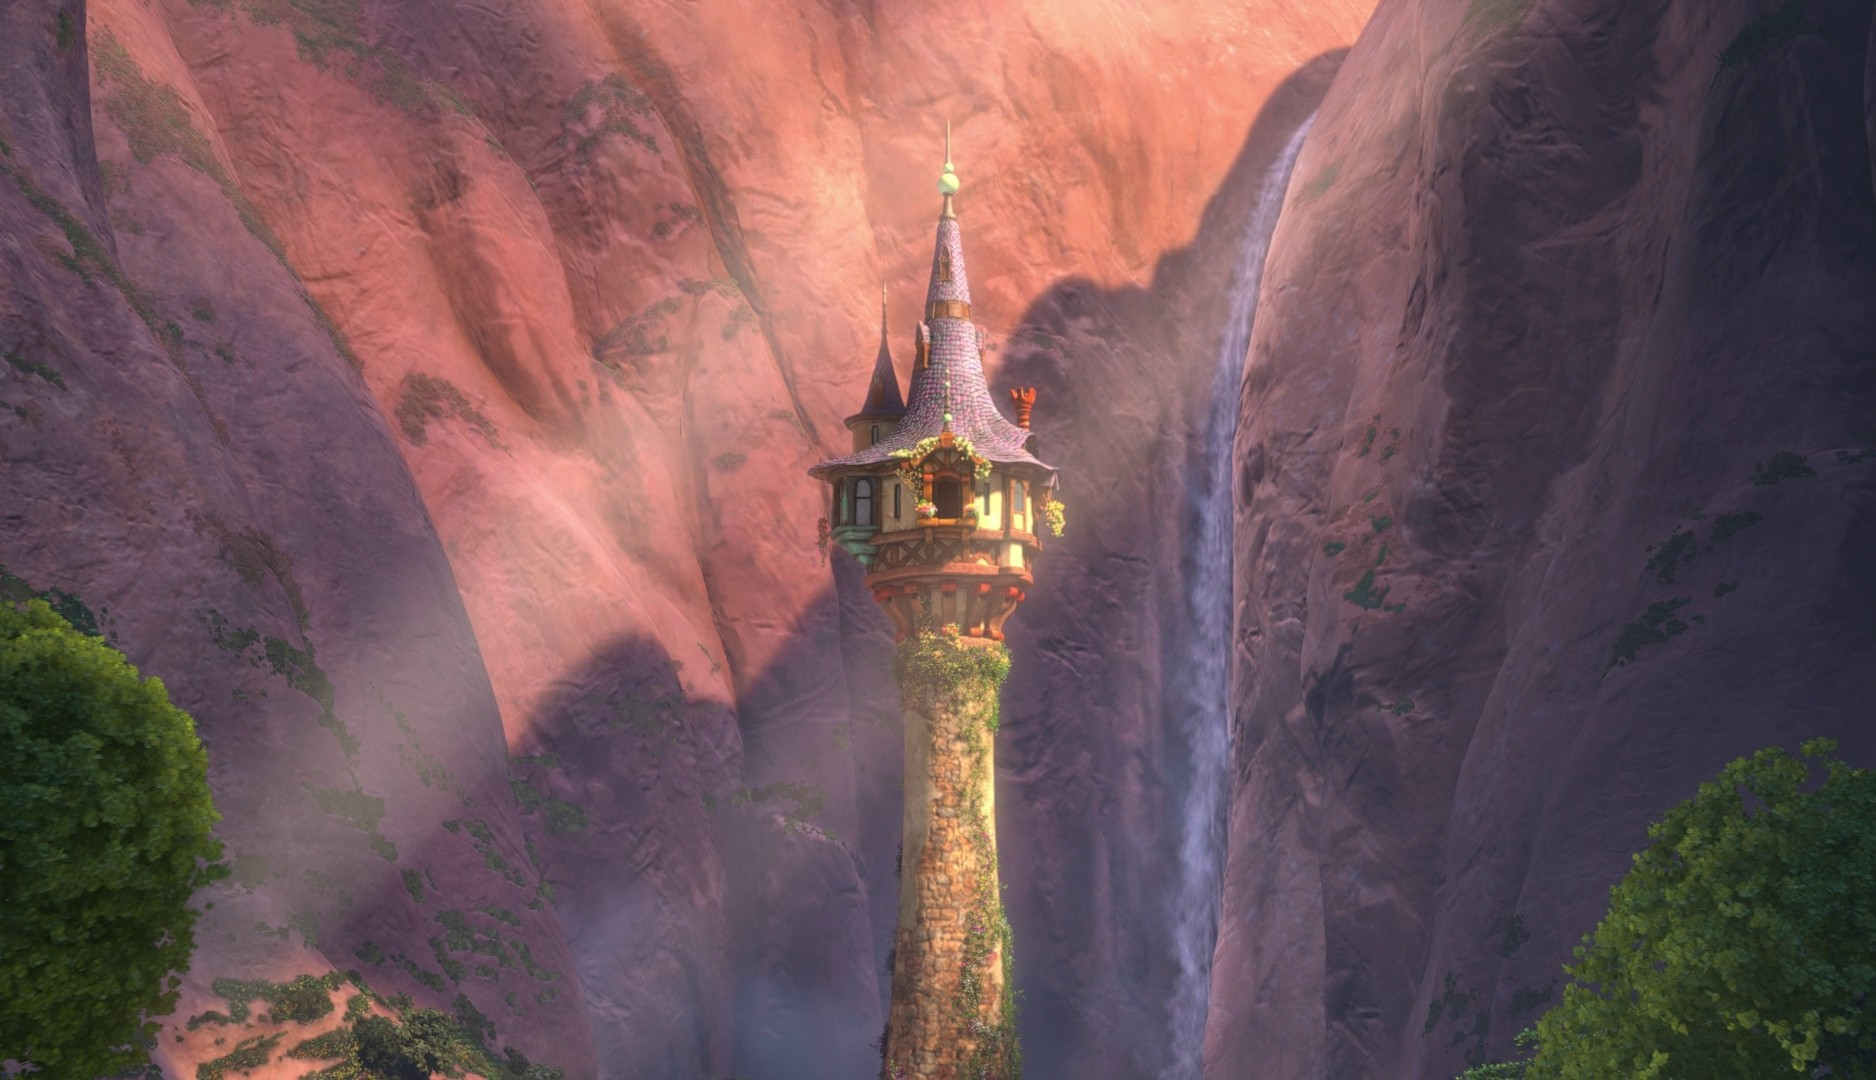 69 tangled hd wallpapers backgrounds wallpaper abyss page 2 - Tangled tower wallpaper ...